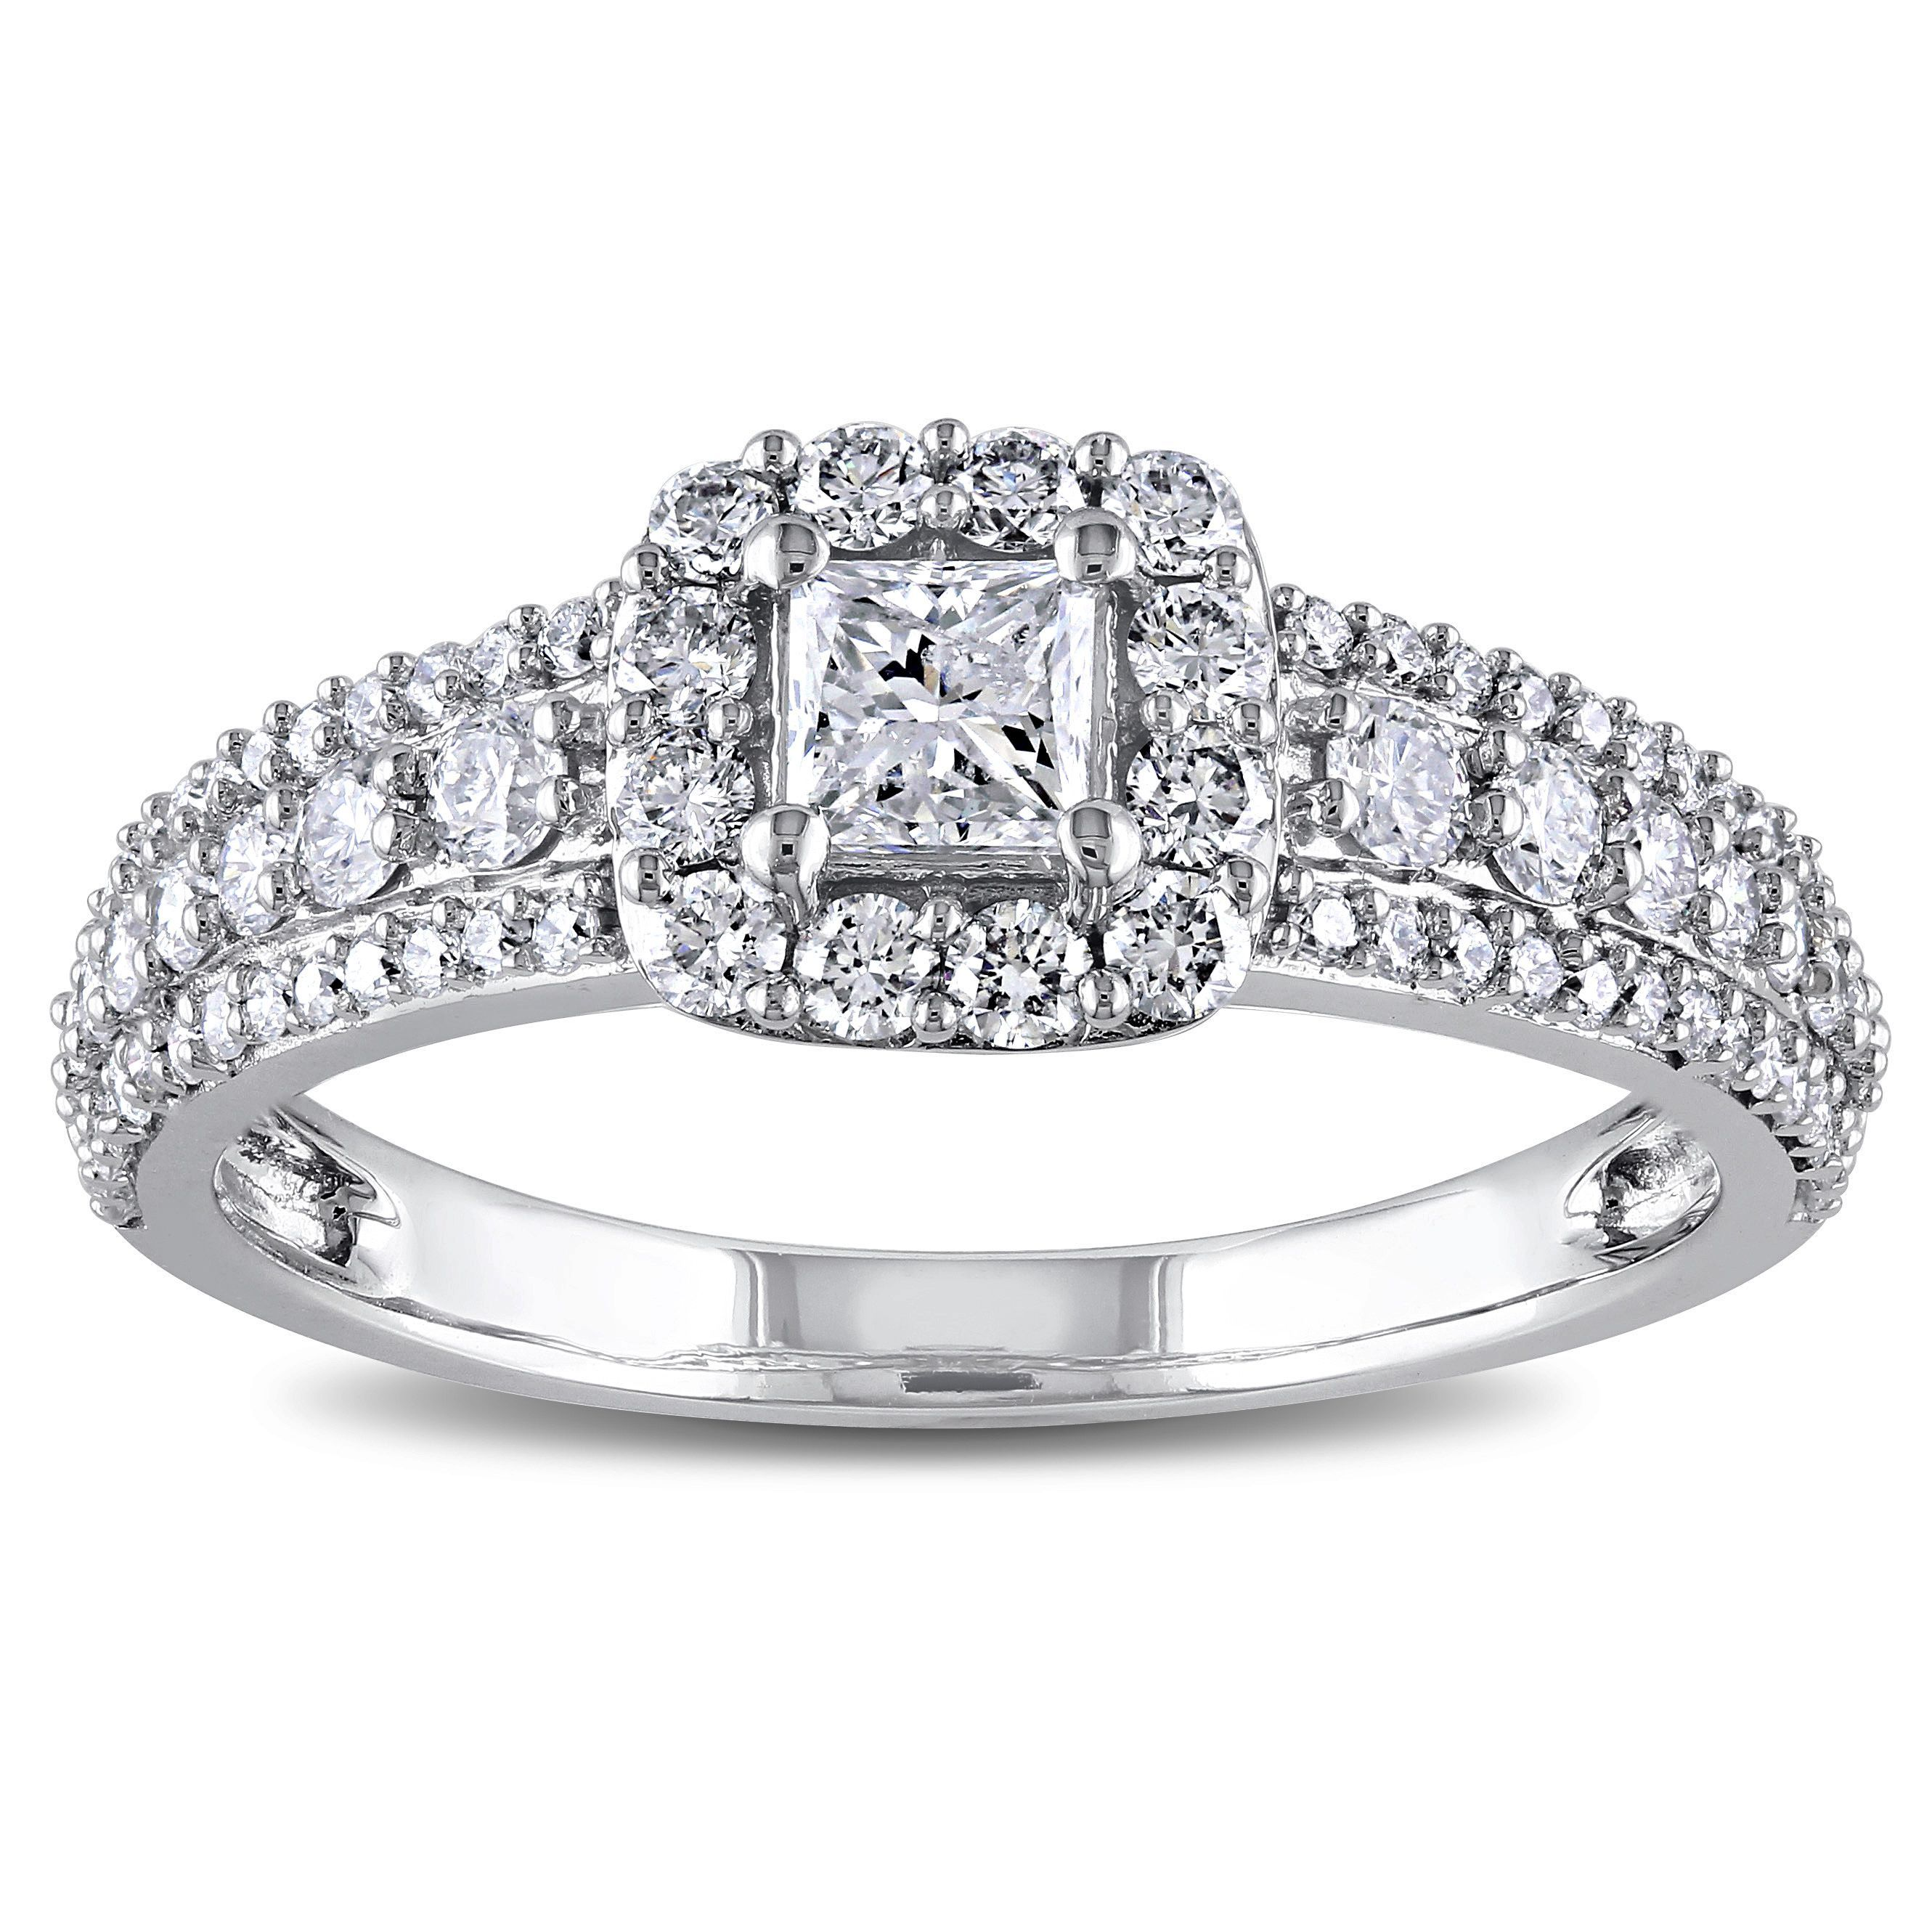 Miadora Signature Collection 14k White Gold 1ct Tdw Diamond Engagement Ring  (gh, I1i2) (size 10), Women's